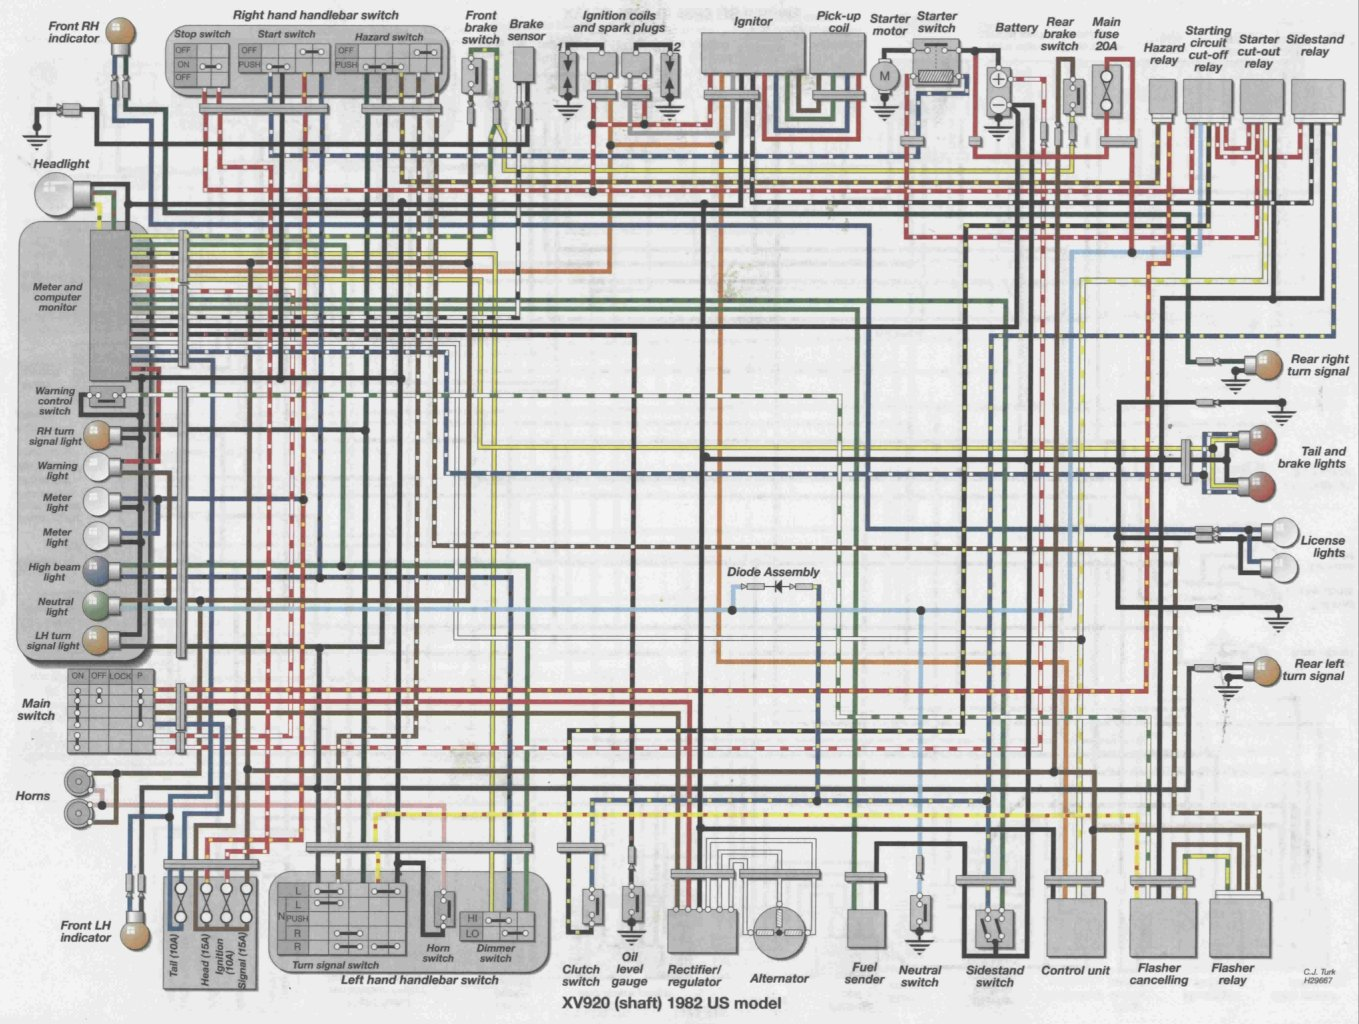 Yamaha Maxim Wiring Diagram Printable Wiring Diagram Schematic ... on 1981 ford bronco wiring diagram, 1981 camaro wiring diagram, 1981 trans am wiring diagram, 1981 dodge wiring diagram, 1981 toyota wiring diagram, 1981 corvette wiring diagram, 1981 mustang wiring diagram, 1981 gmc truck wiring diagram, 1981 chevy truck wiring diagram,